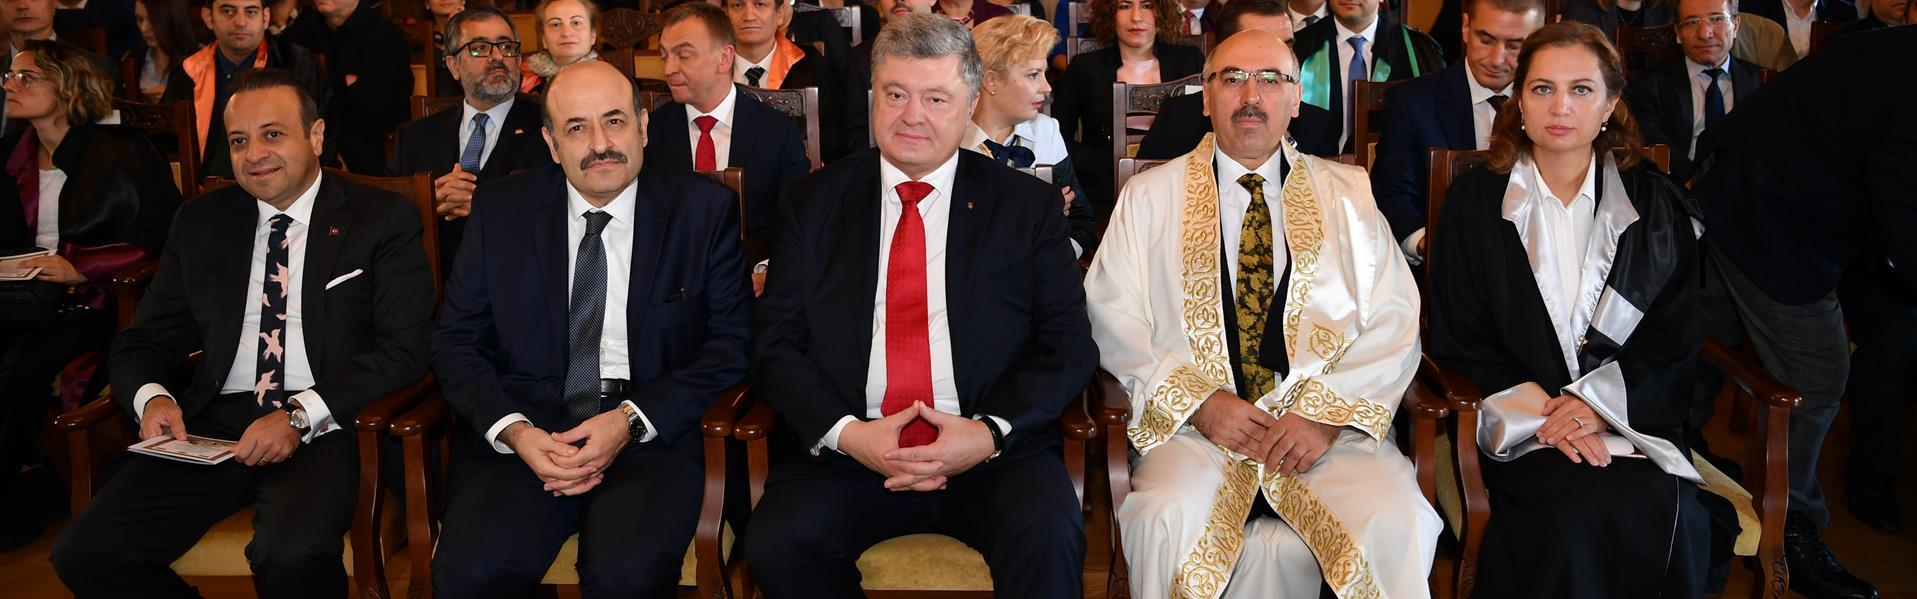 Istanbul-University-gave-honorary-doctorate-to-Ukrainian-President-Petro-Poroshenko